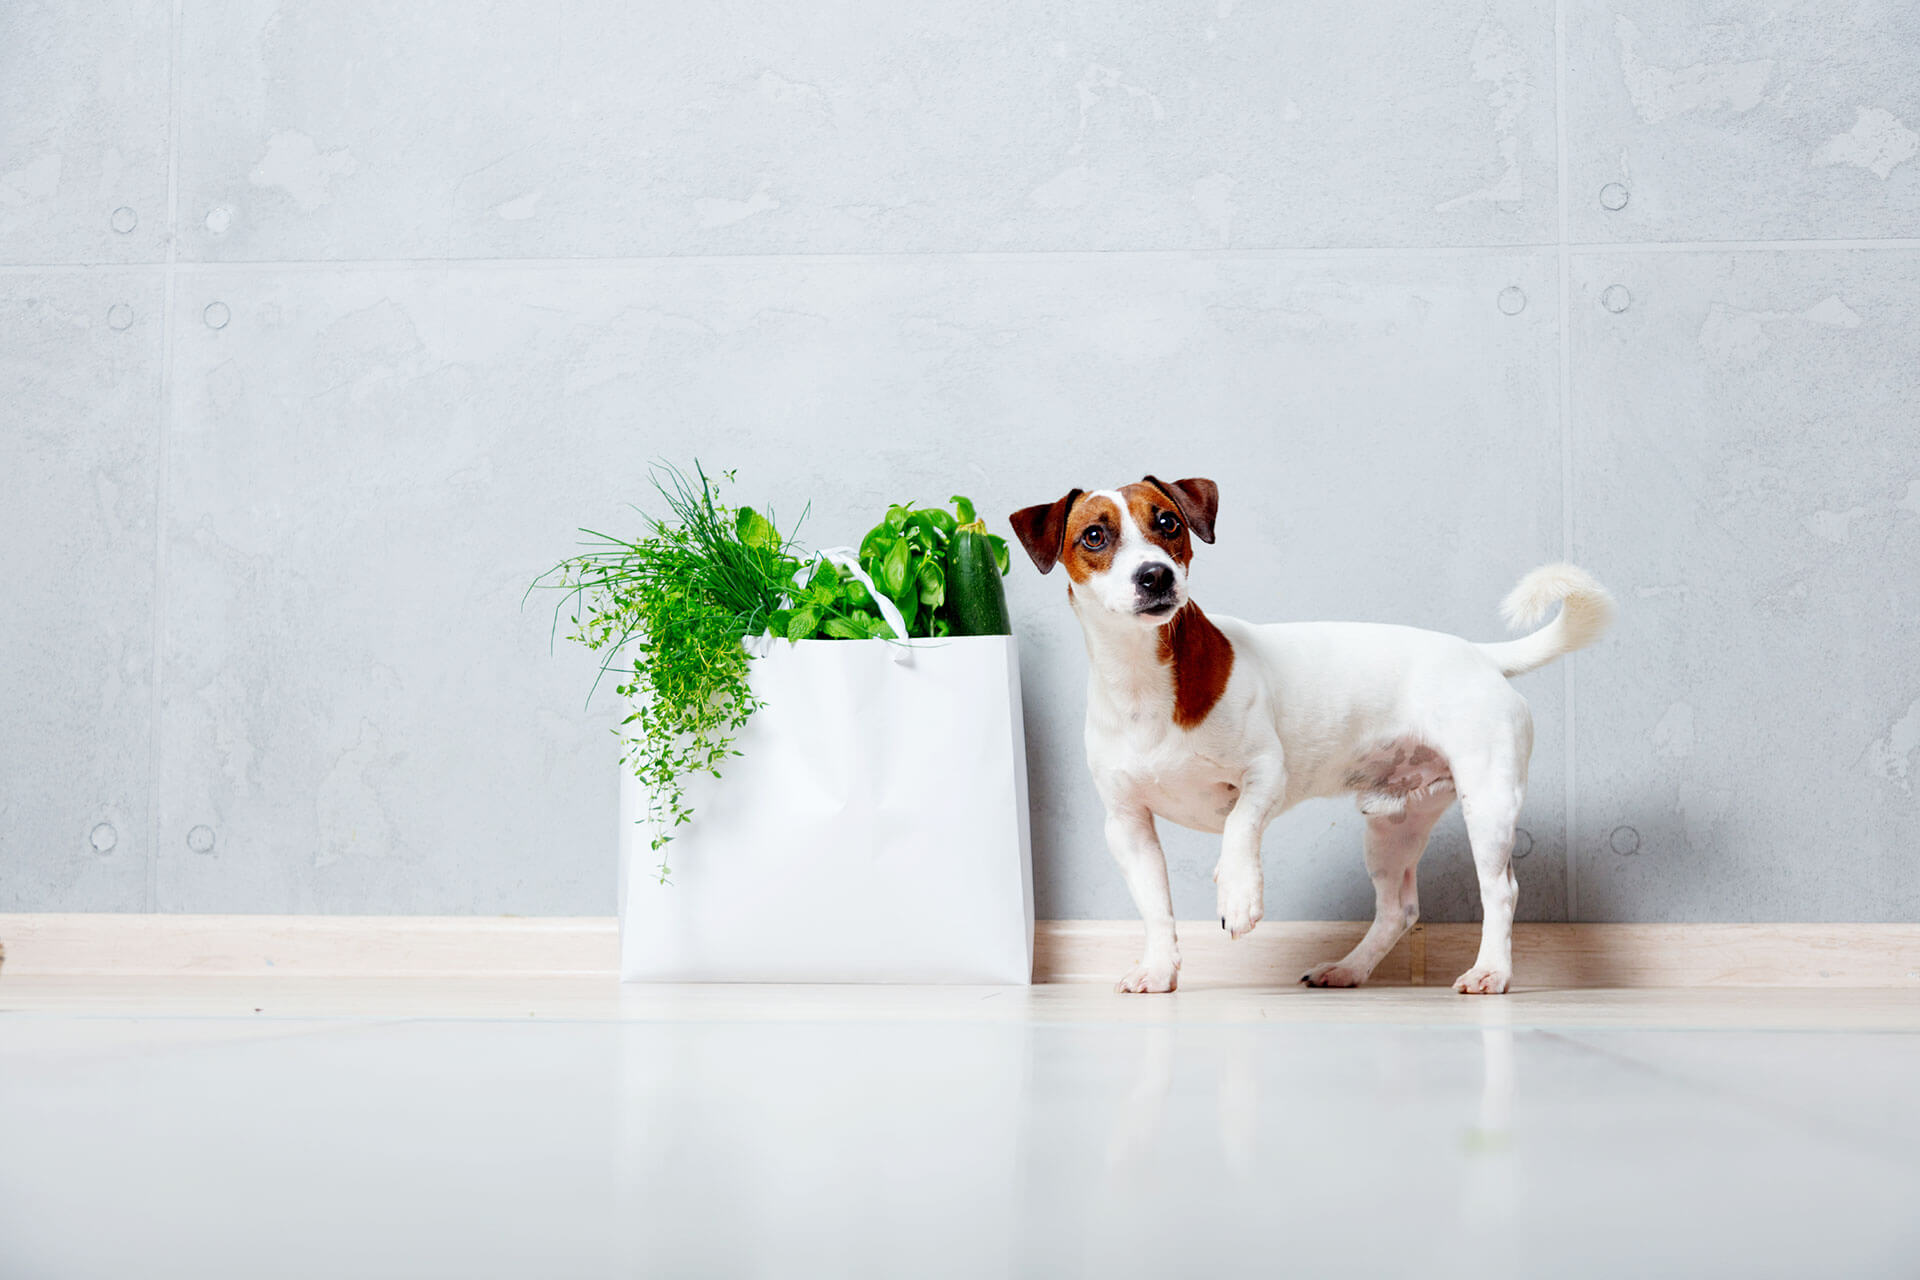 Vegan dog food: The debate between advantages & disadvantages for your dog's health